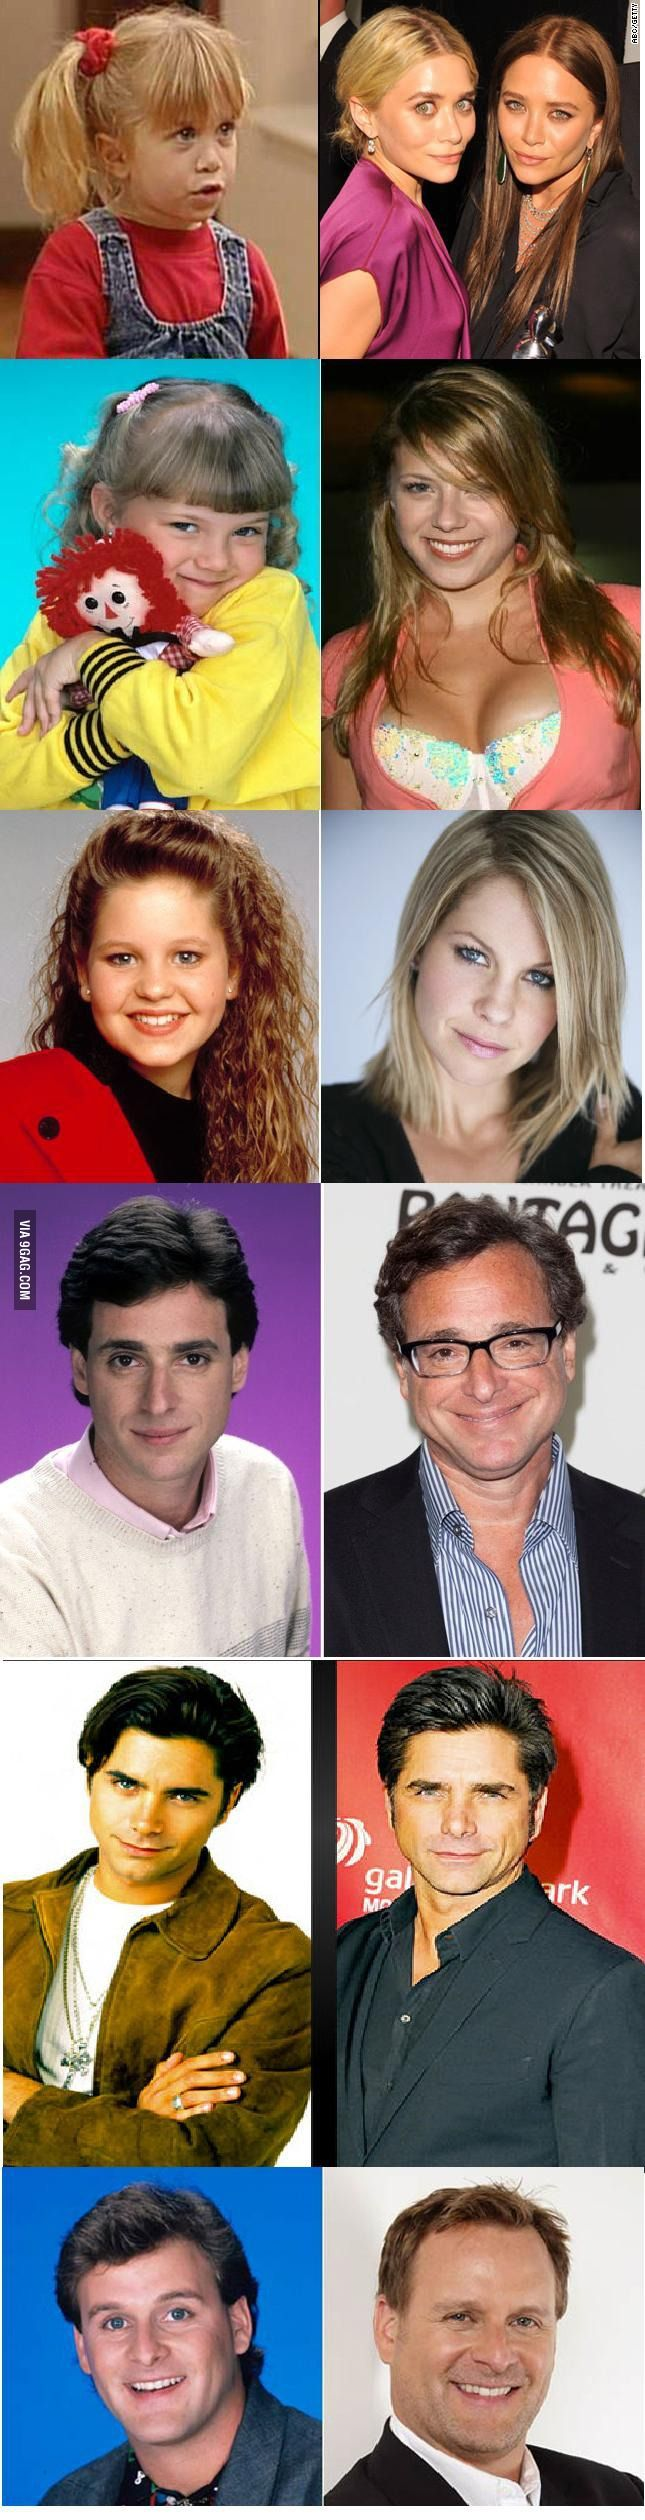 Full house - then and now | Then & Now | Pinterest